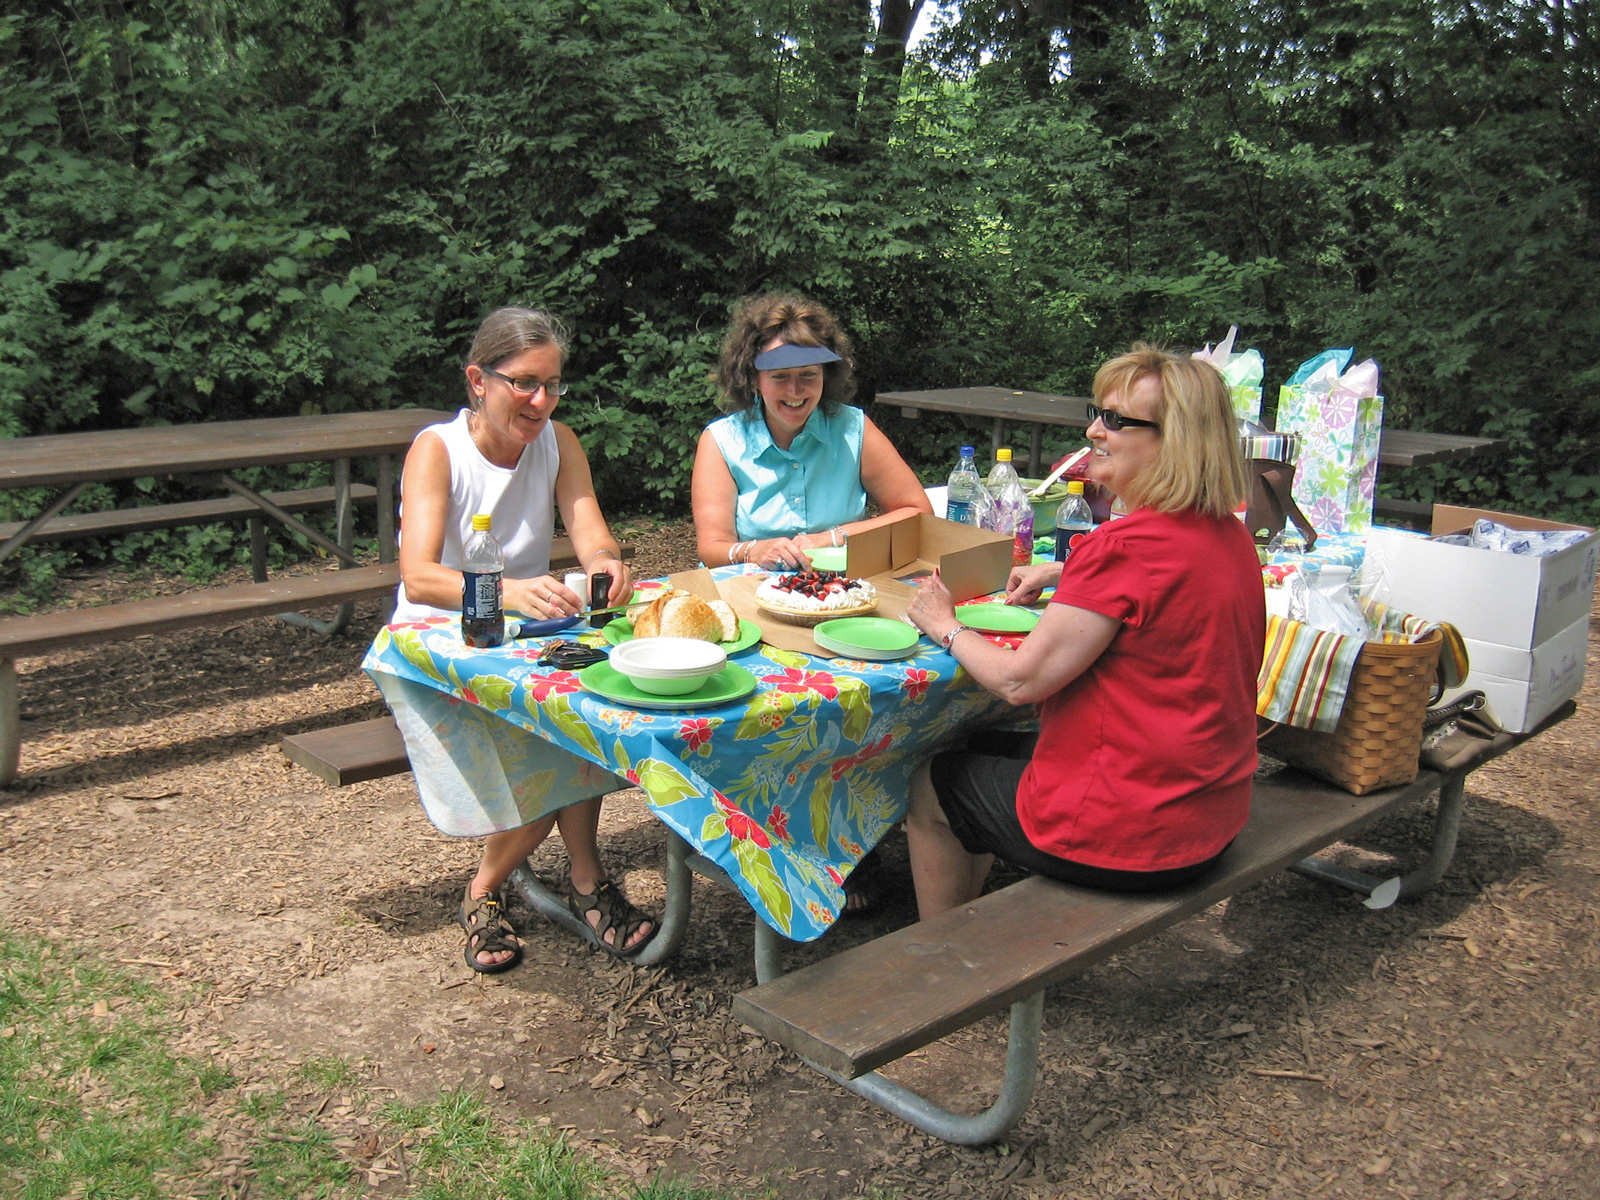 Picnicking at Slate Run's Buzzard's Roost Picnic Area. Photo by Andrea Krava.